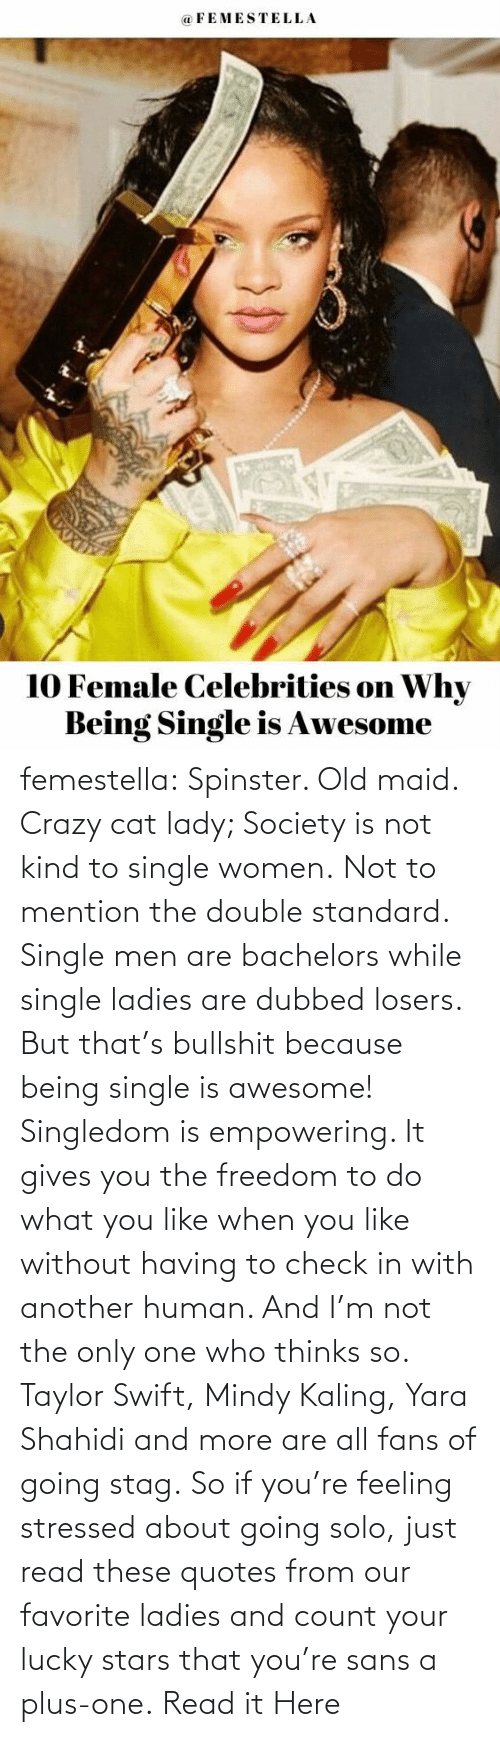 Only One: femestella: Spinster. Old maid. Crazy cat lady; Society is not kind to single women. Not to mention the double standard. Single men are bachelors while single ladies are dubbed losers. But that's bullshit because being single is awesome! Singledom is empowering. It gives you the freedom to do what you like when you like without having to check in with another human. And I'm not the only one who thinks so. Taylor Swift, Mindy Kaling, Yara Shahidi and more are all fans of going stag. So if you're feeling stressed about going solo, just read these quotes from our favorite ladies and count your lucky stars that you're sans a plus-one. Read it Here